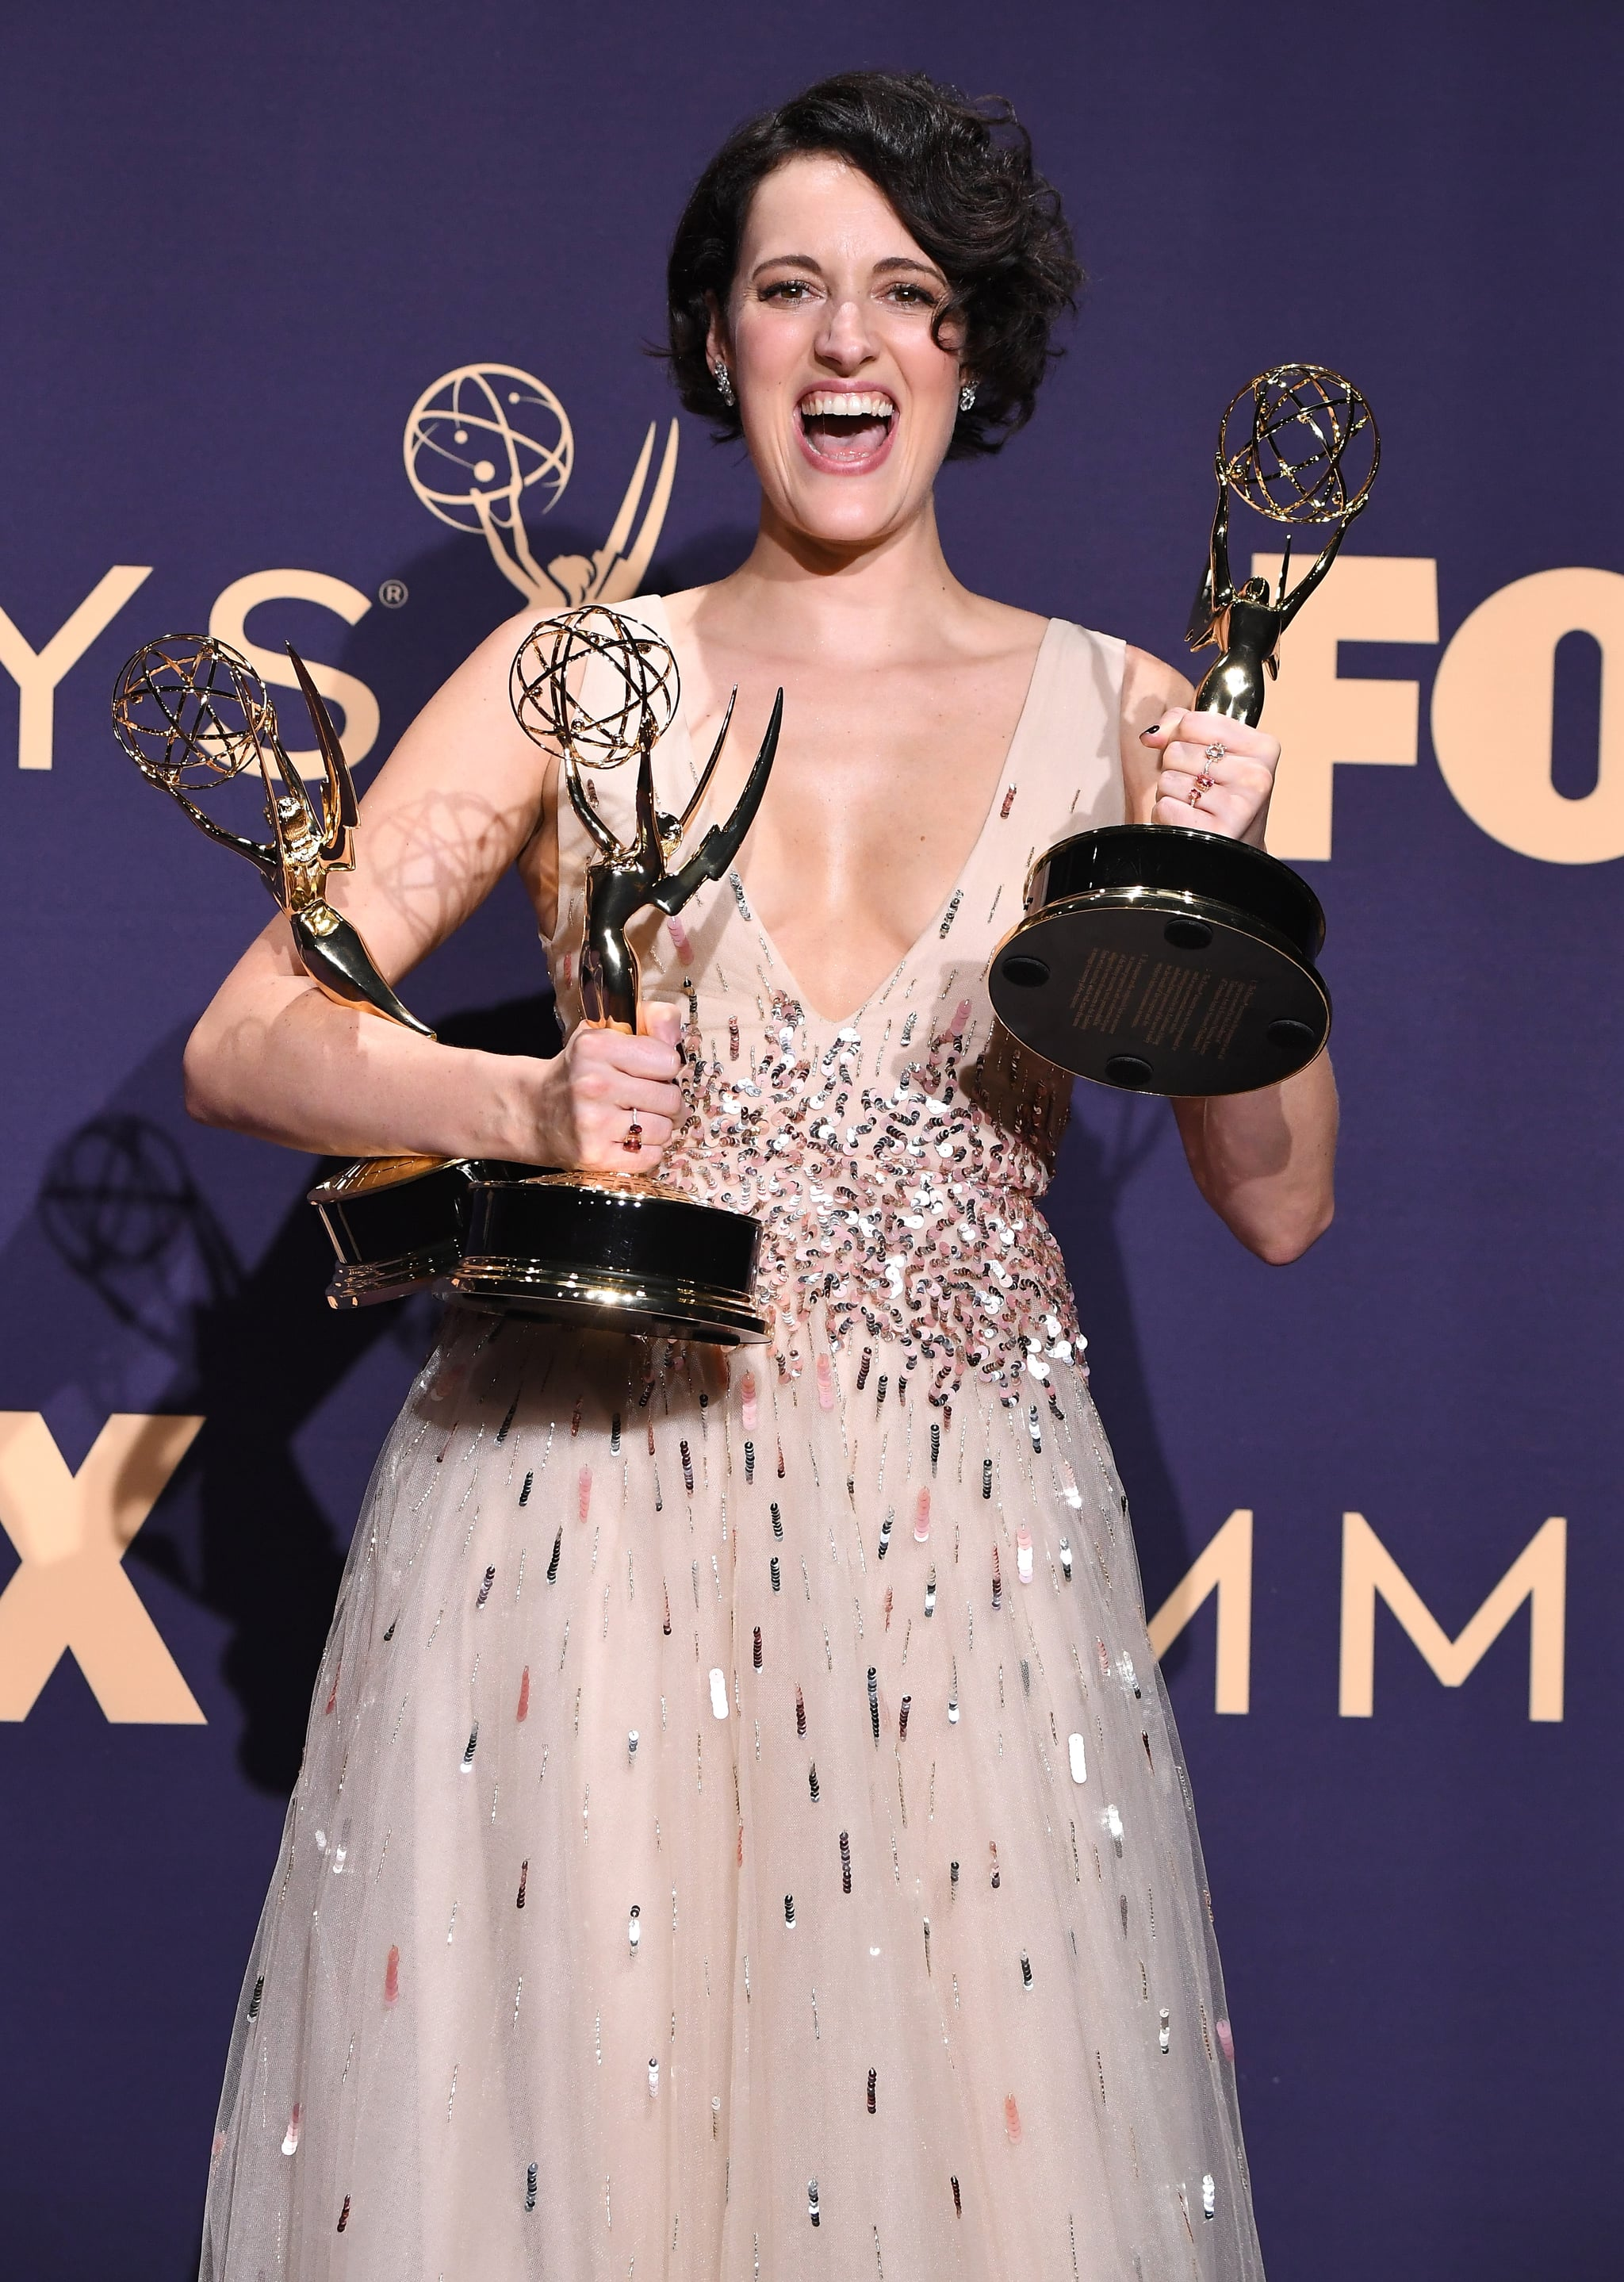 LOS ANGELES, CALIFORNIA - SEPTEMBER 22: Phoebe Waller-Bridge poses at the 71st Emmy Awards at Microsoft Theater on September 22, 2019 in Los Angeles, California. (Photo by Steve Granitz/WireImage)